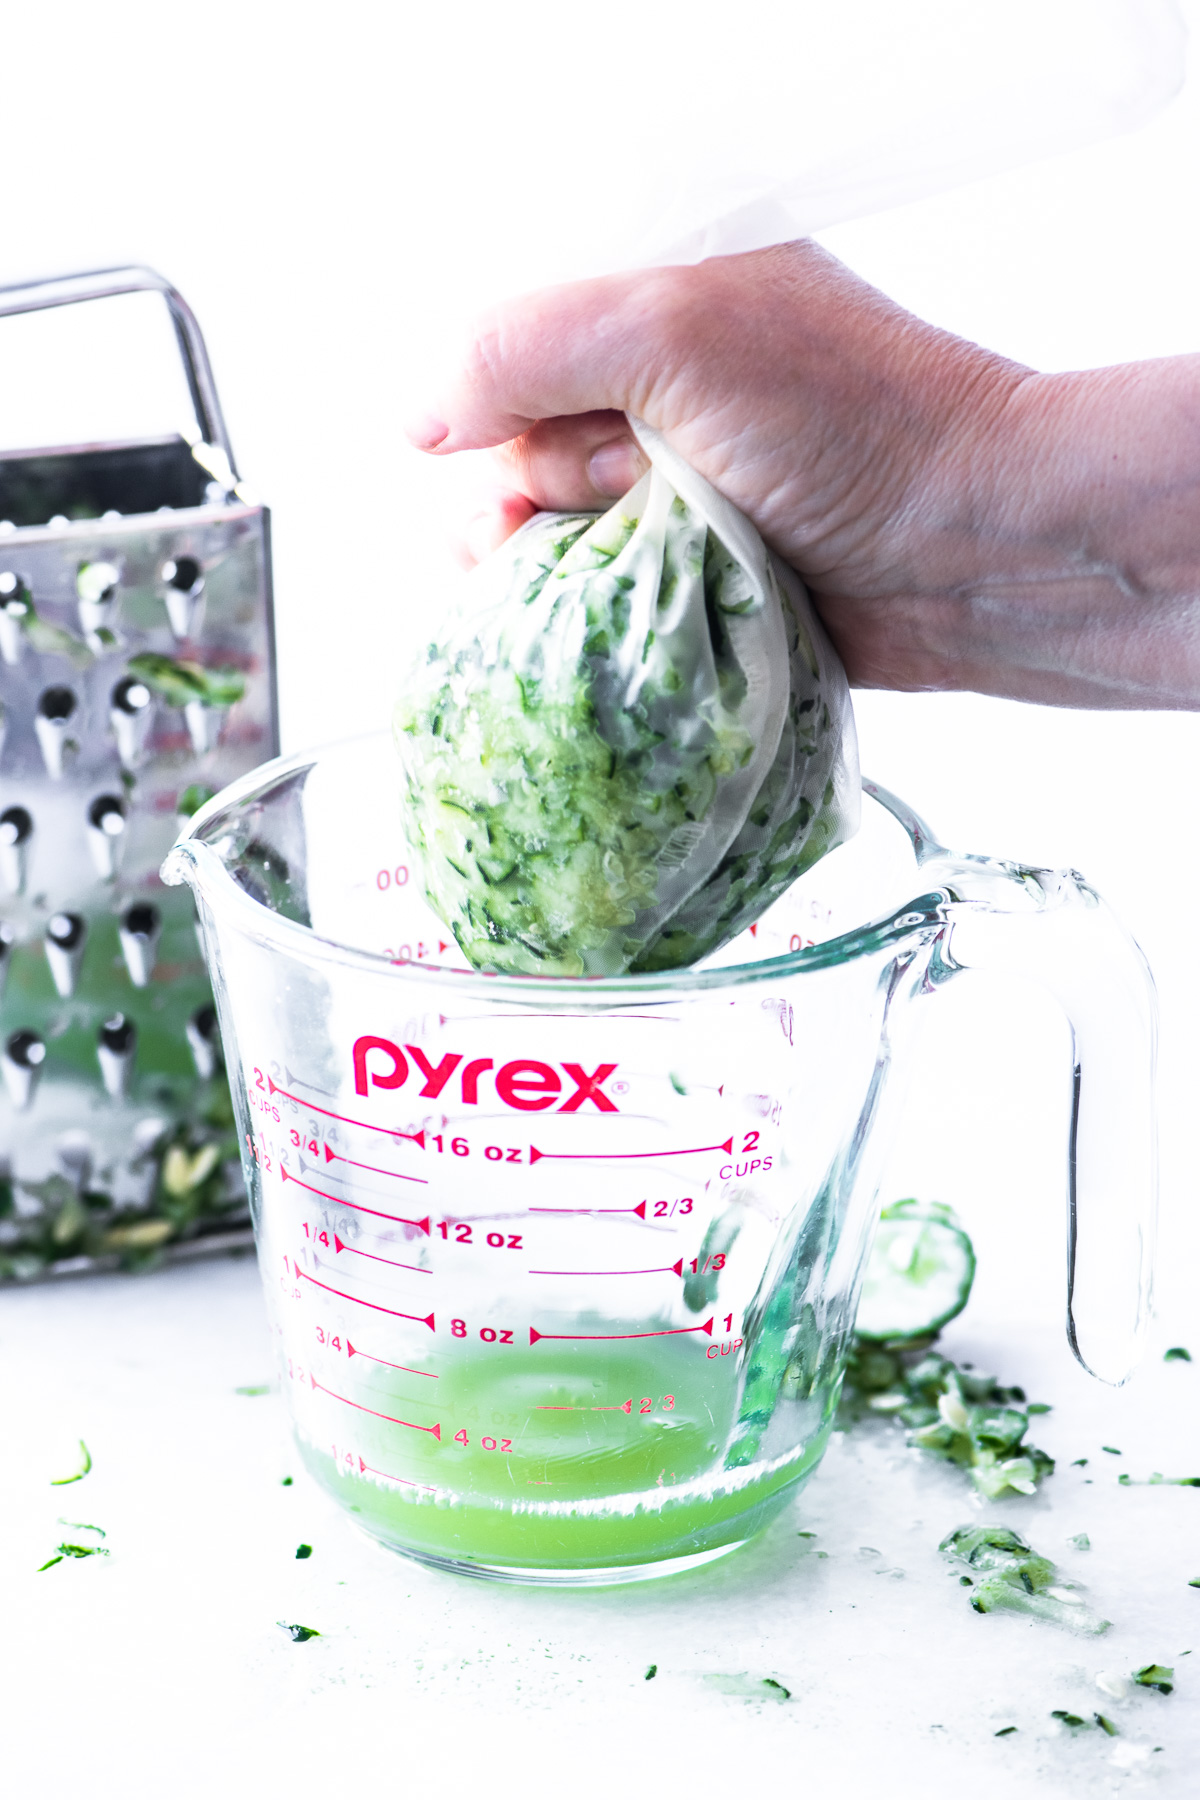 Squeezing excess moisture from shredded cucumber for homemade tzatziki dip